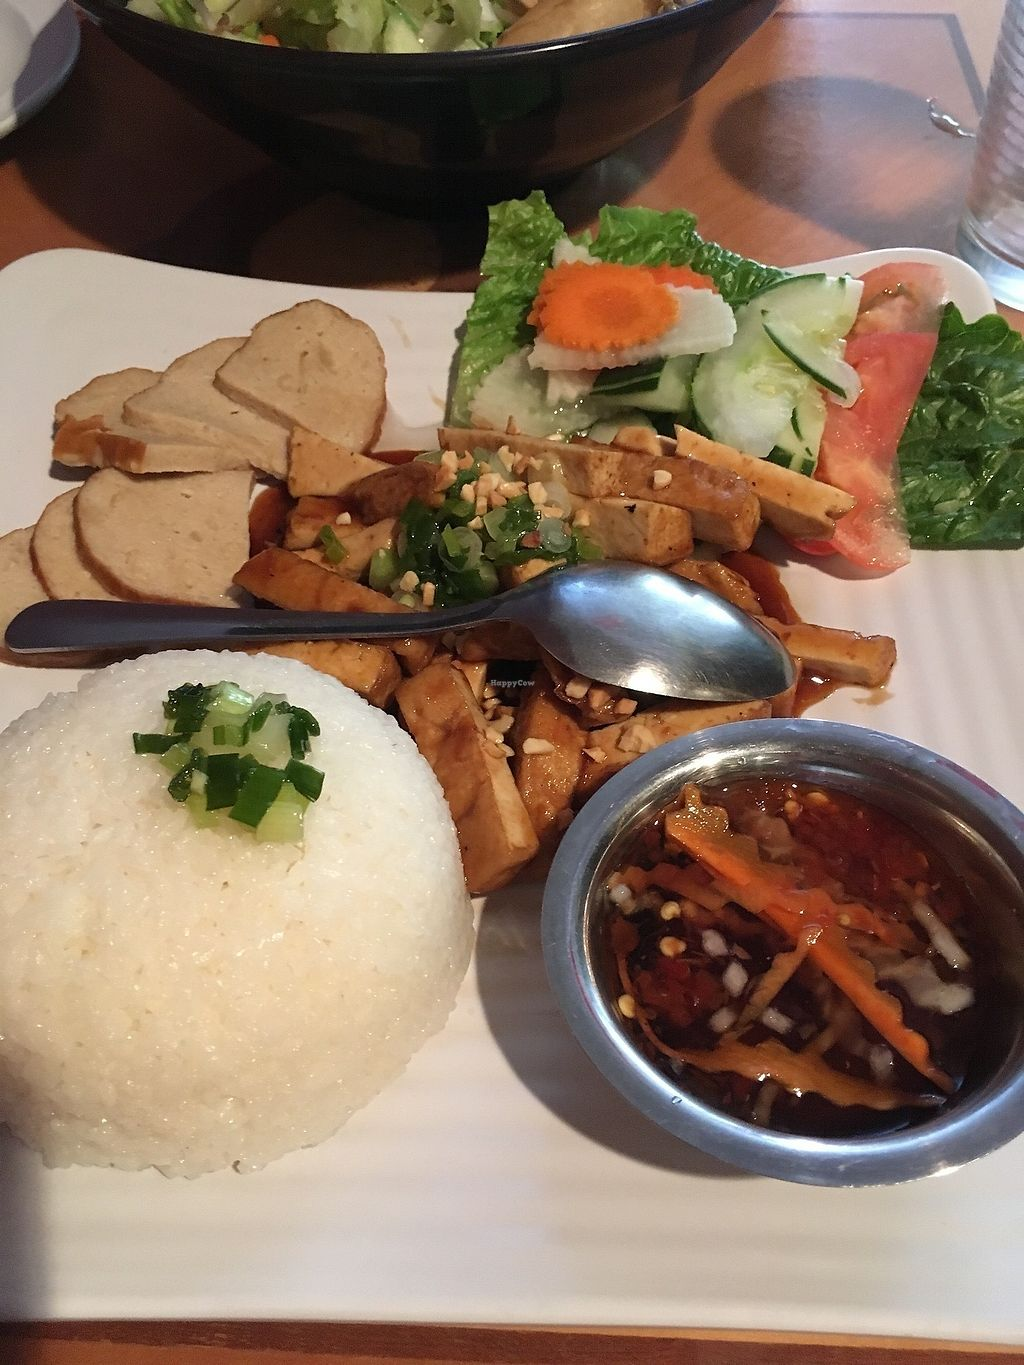 """Photo of Tan Lac Vien Vietnamese Bistro  by <a href=""""/members/profile/ecoRDN"""">ecoRDN</a> <br/>Vegan Broken Rice Tan Lac Vien - Squirrel Hill Photo by ecoRDN - ecoRDN.com <br/> July 16, 2017  - <a href='/contact/abuse/image/93466/280993'>Report</a>"""